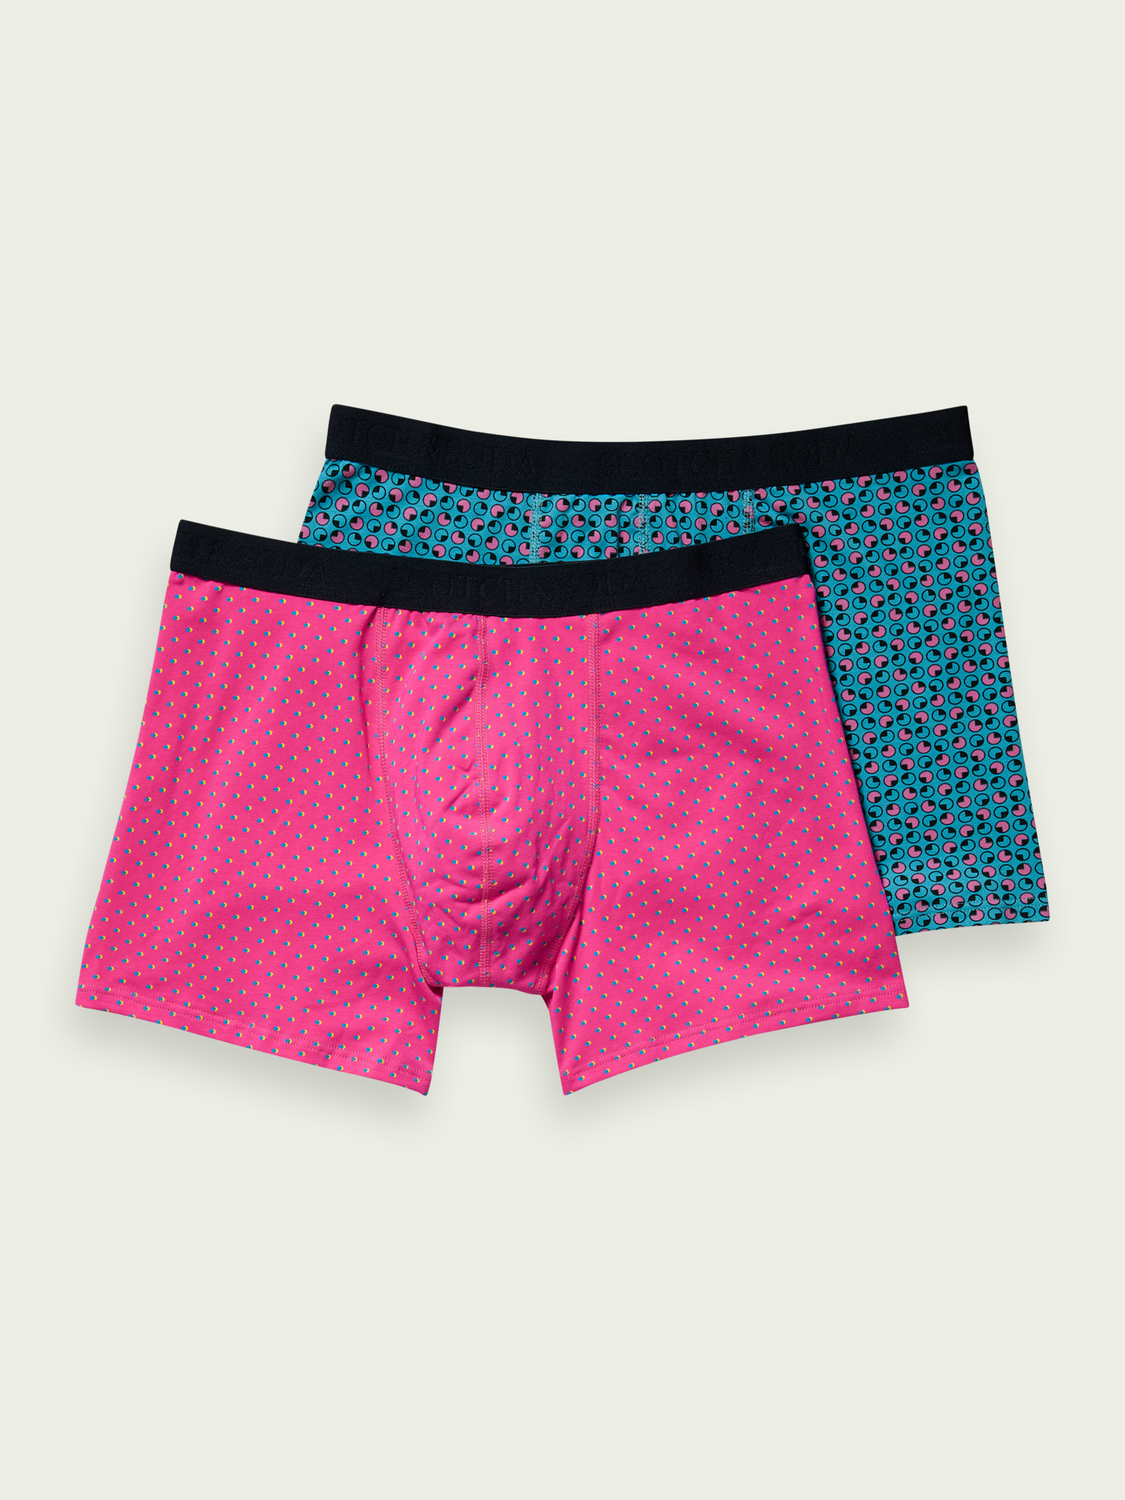 Men 2-pack classic boxer short